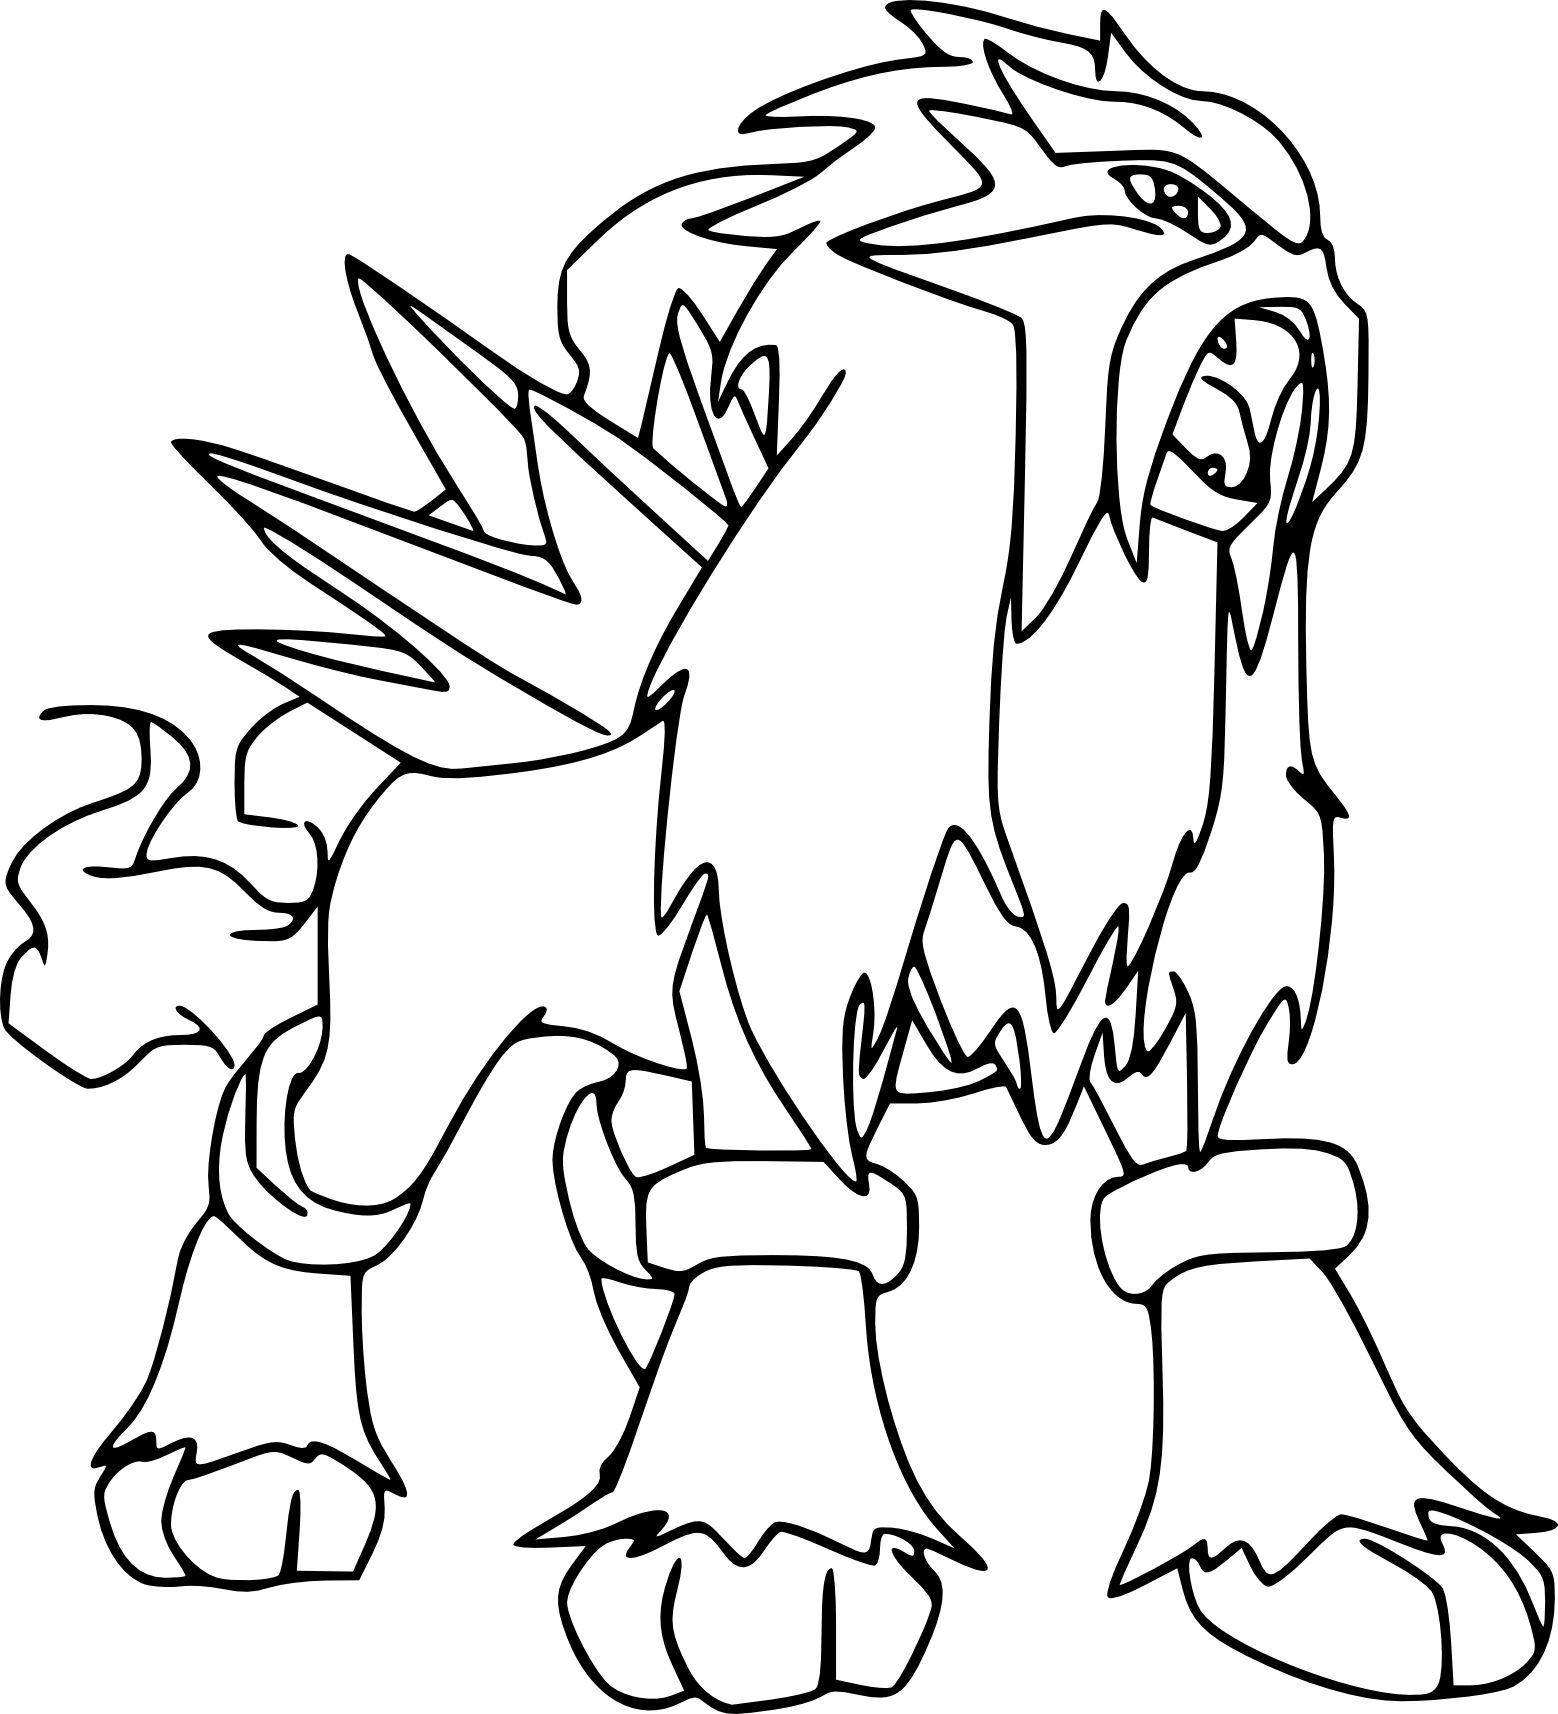 Coloriage Pokemon   colorier Dessin   imprimer